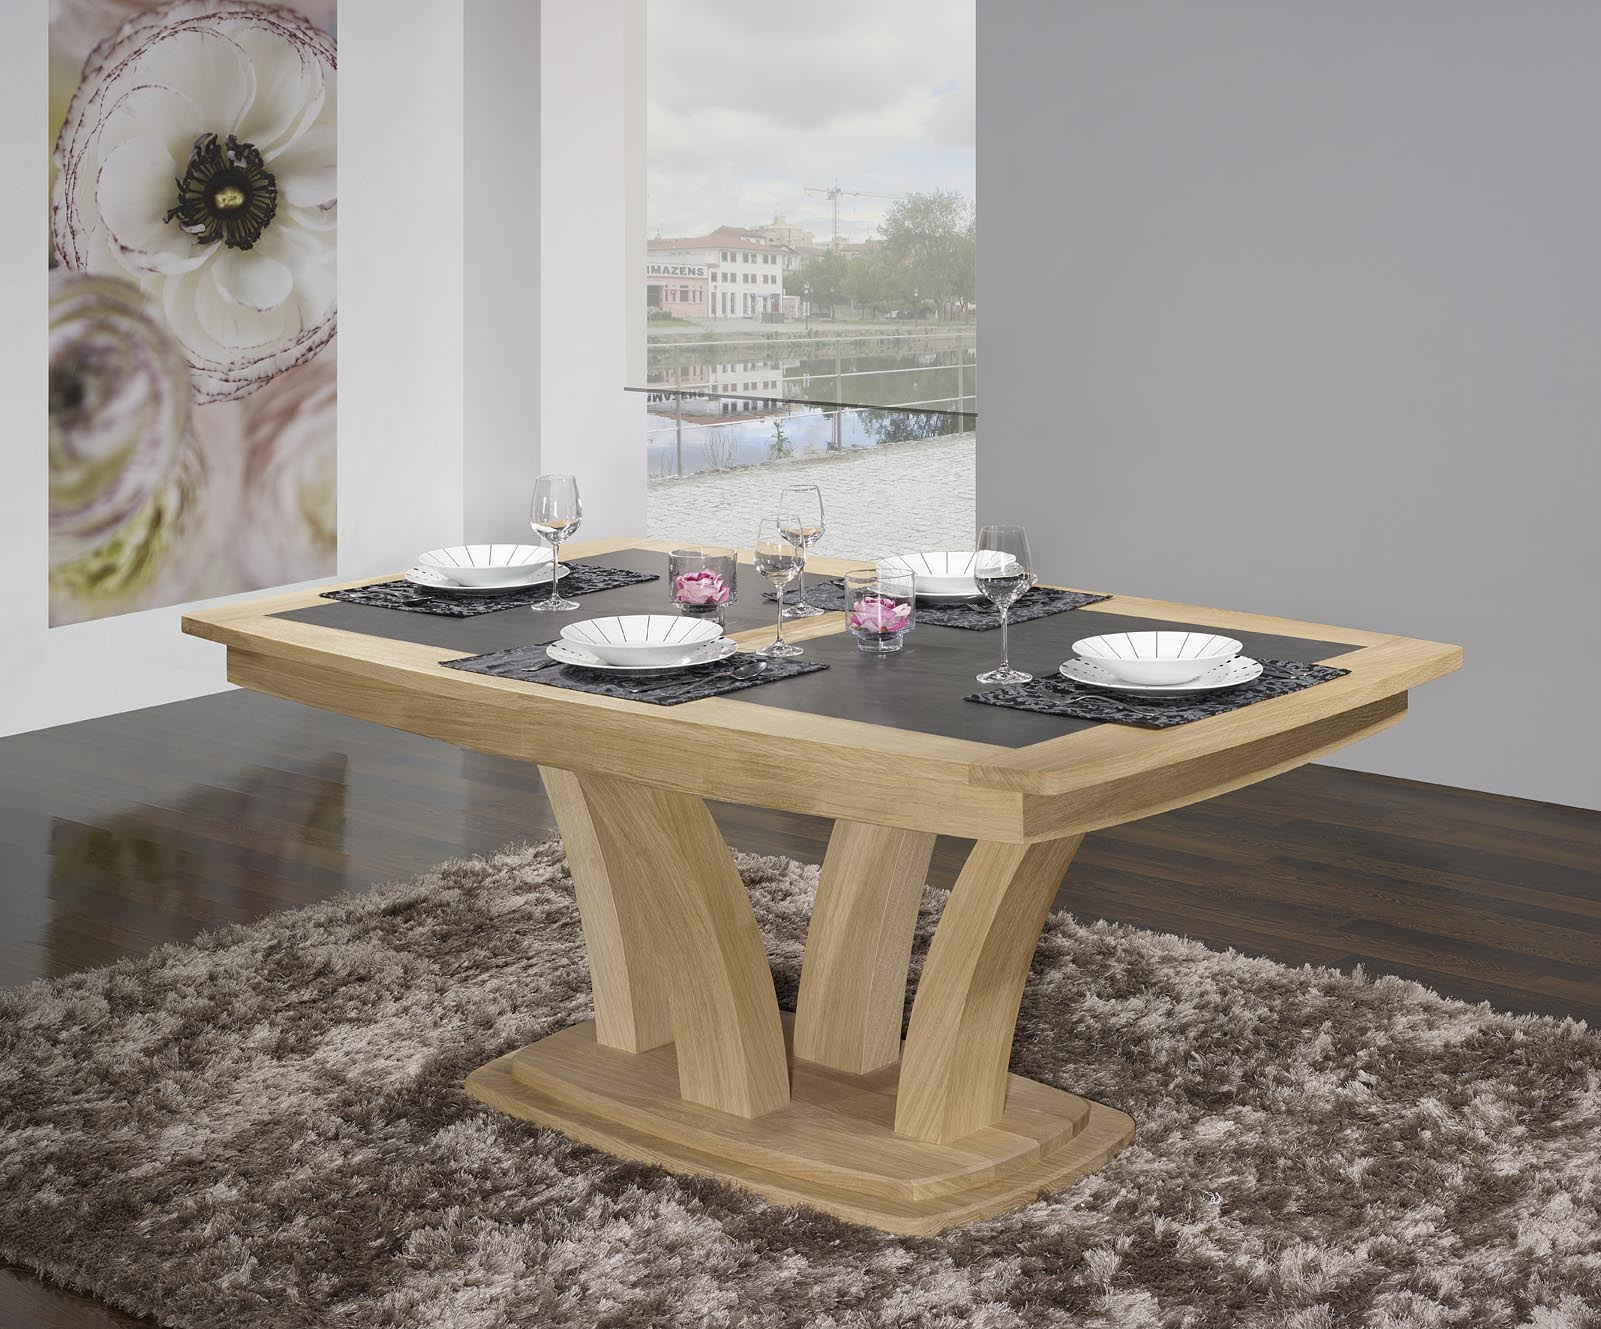 table de repas contemporaine 180x110 en ch ne massif avec c ramique finition ch ne bross. Black Bedroom Furniture Sets. Home Design Ideas